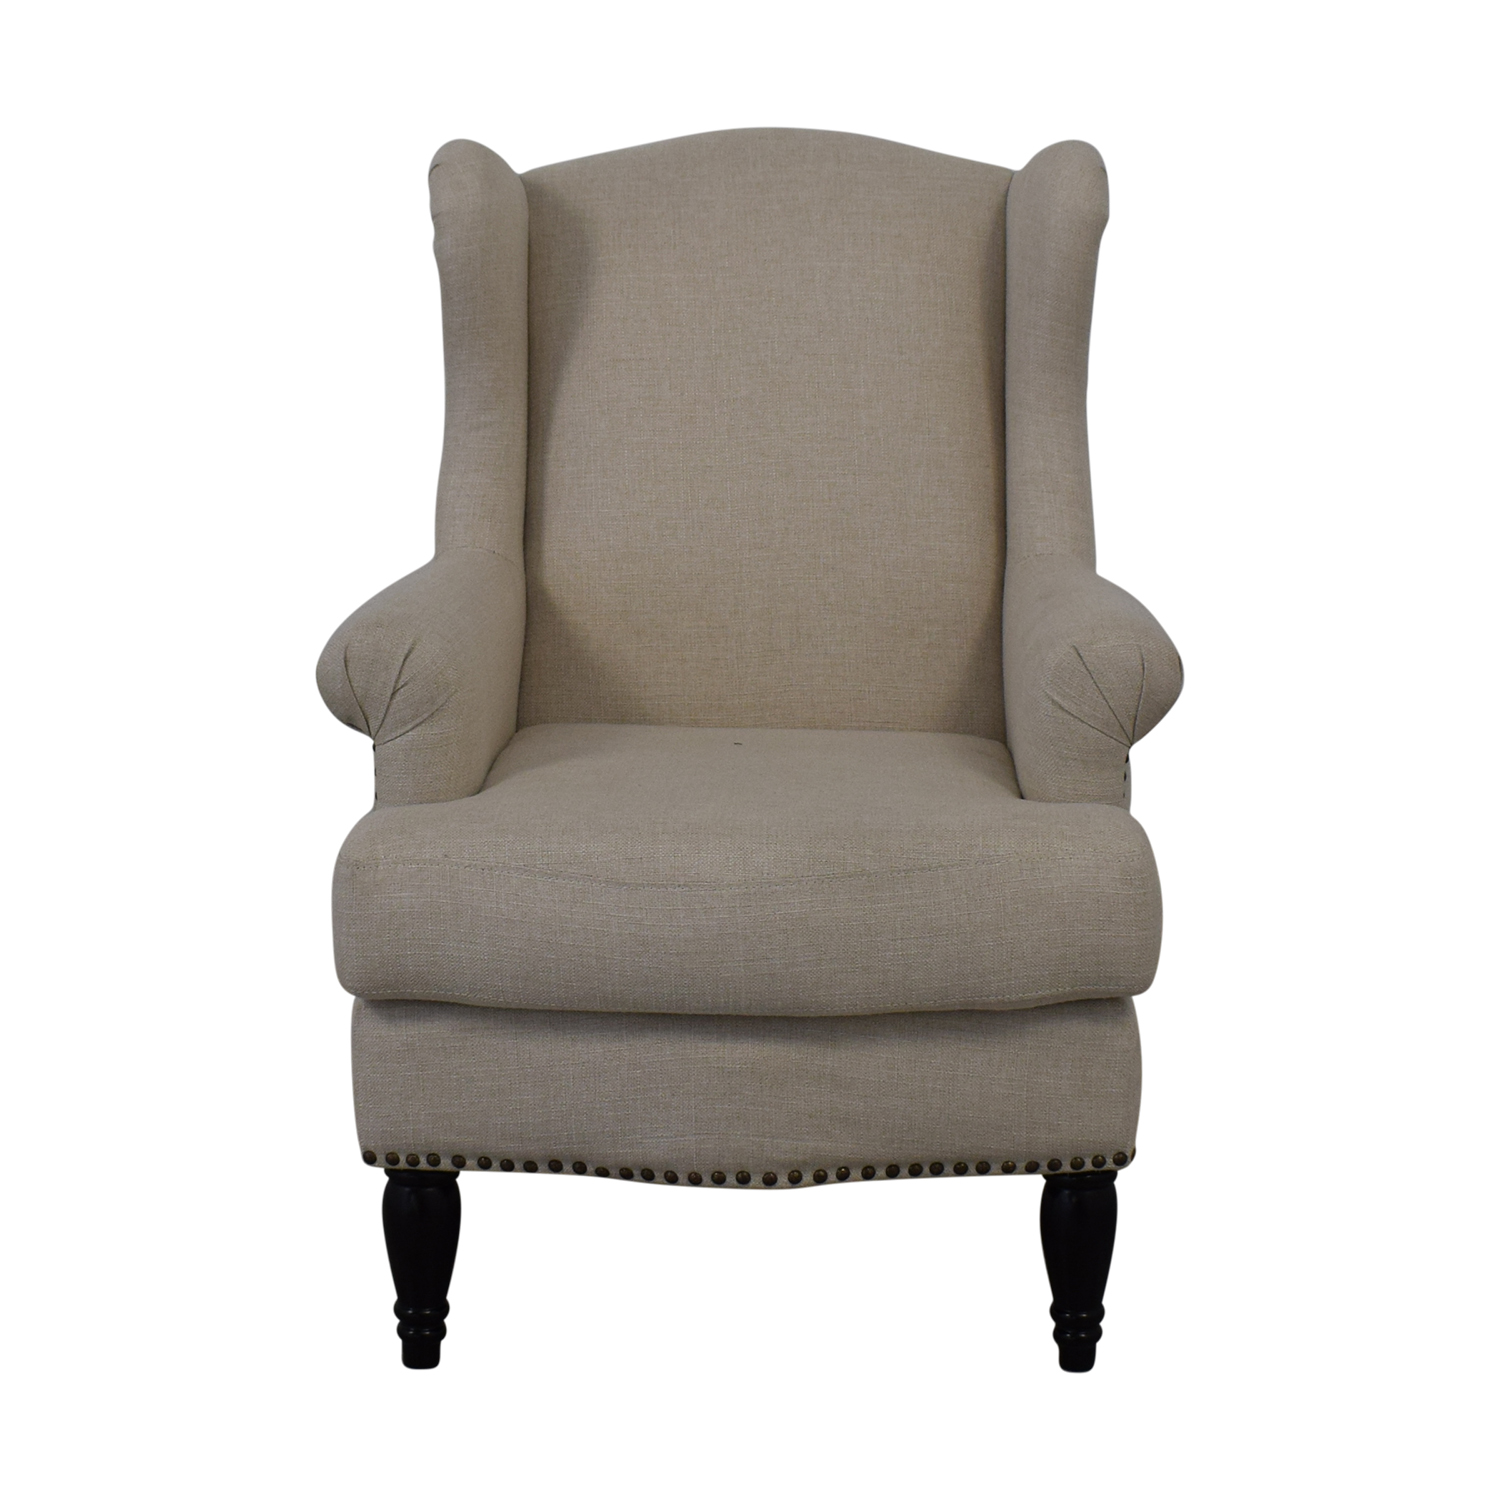 buy Pottery Barn Soma Delancey Upholstered Wingback Armchair Pottery Barn Chairs